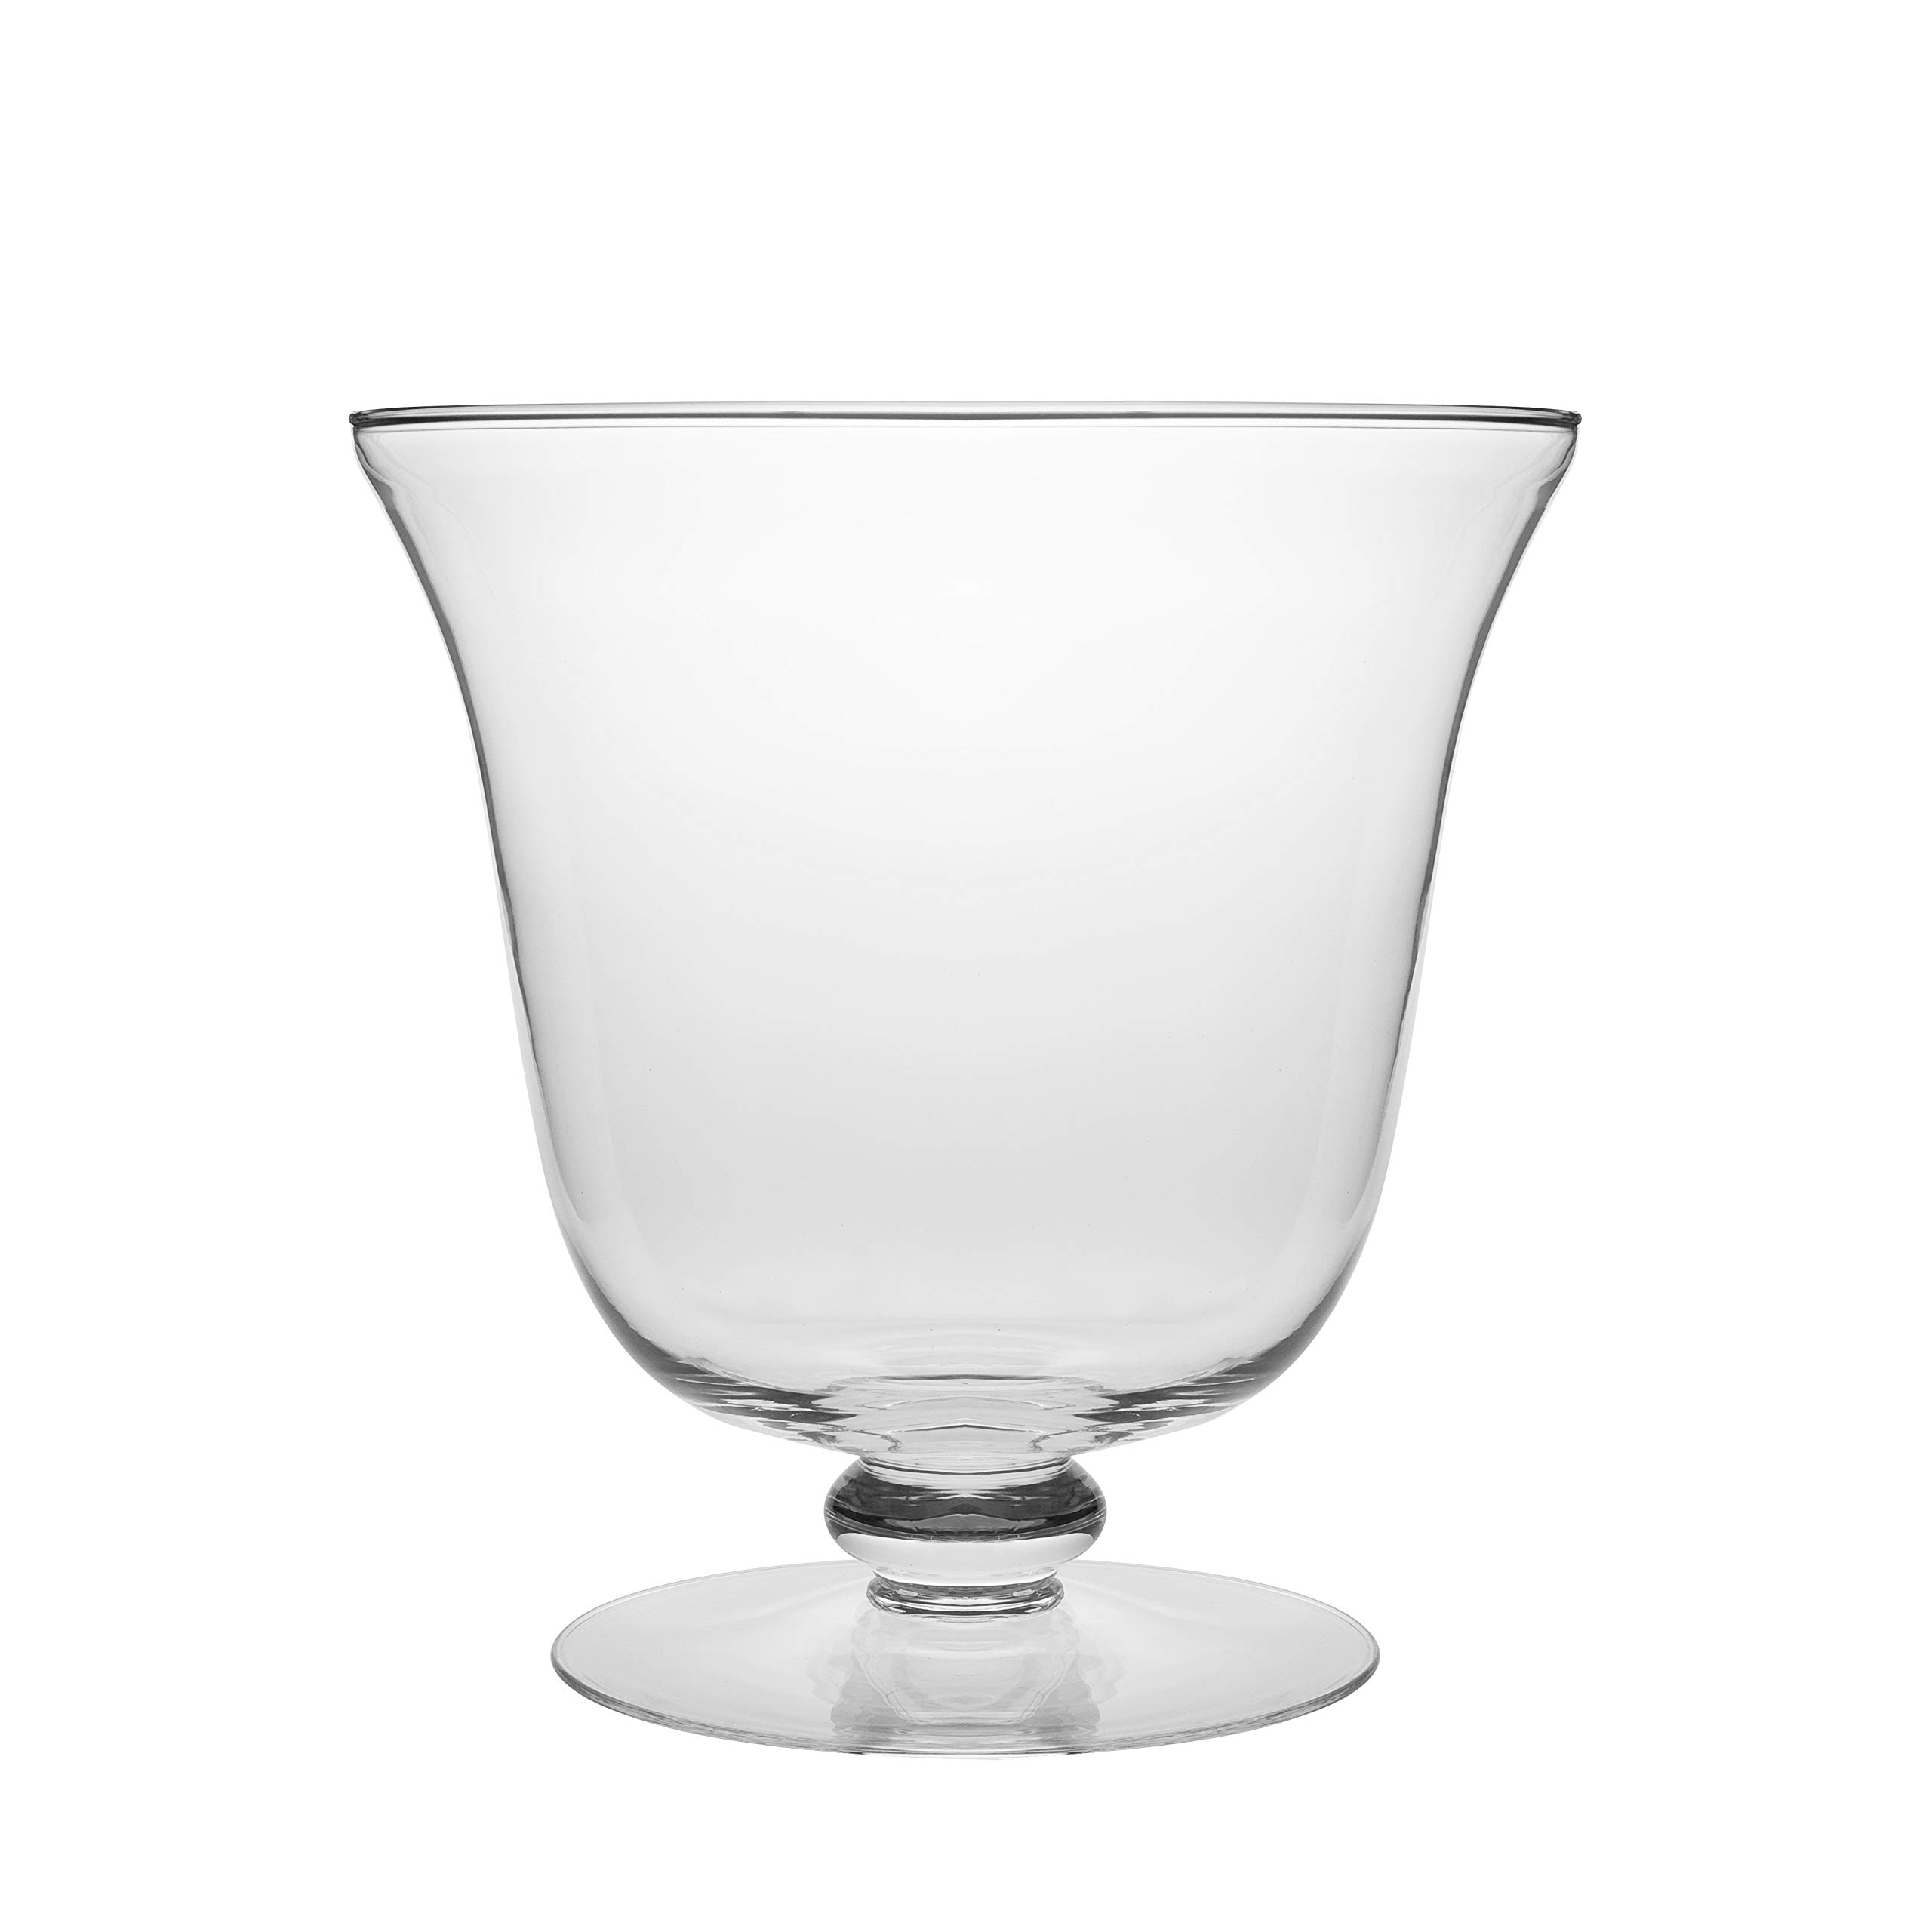 Barski - European Quality - Handmade Thick Glass - Footed - Centerpiece Bowl - Fruit Bowl - Punch Bowl - 210 oz. - 10.25'' Diameter - Made in Europe by Barski